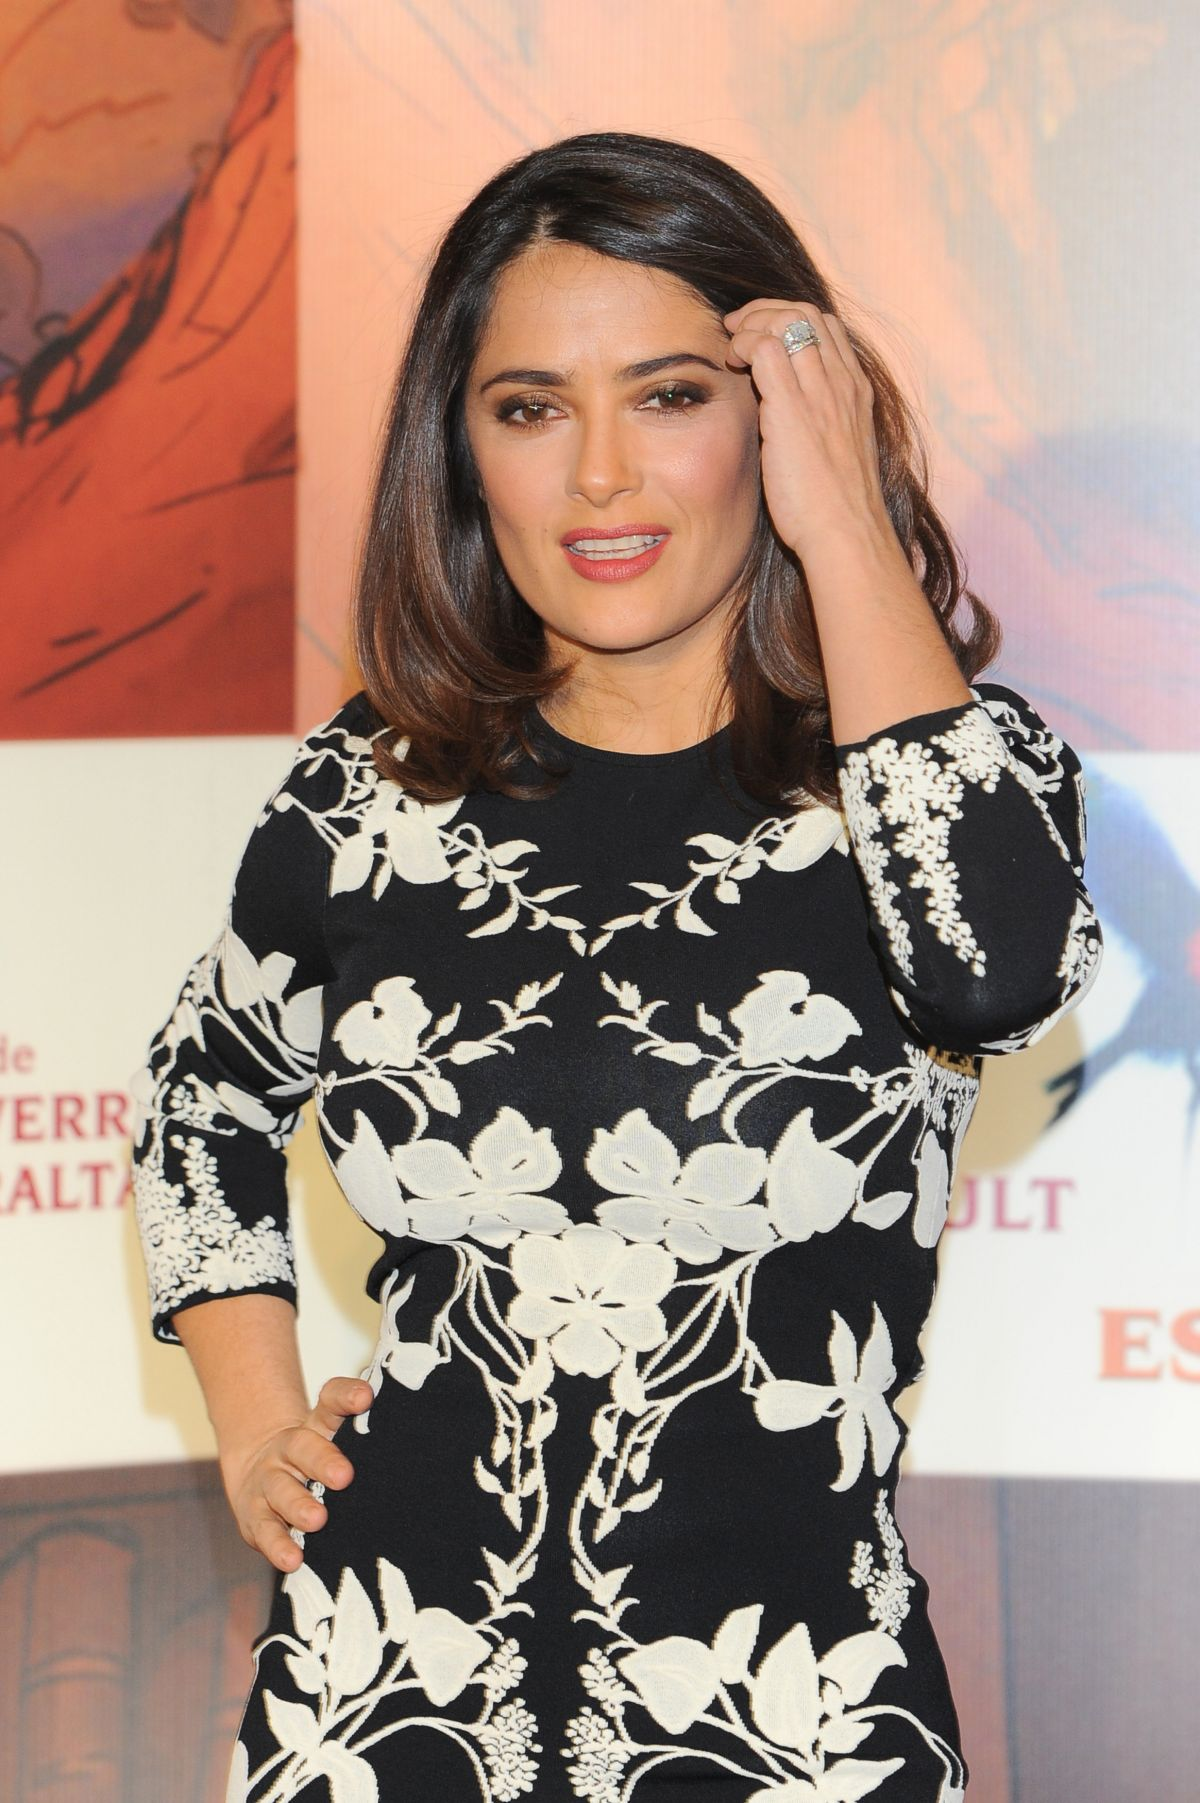 SALMA HAYEK at El Profeta Photocall in Mexico City 01/16/2016 Salma Hayek